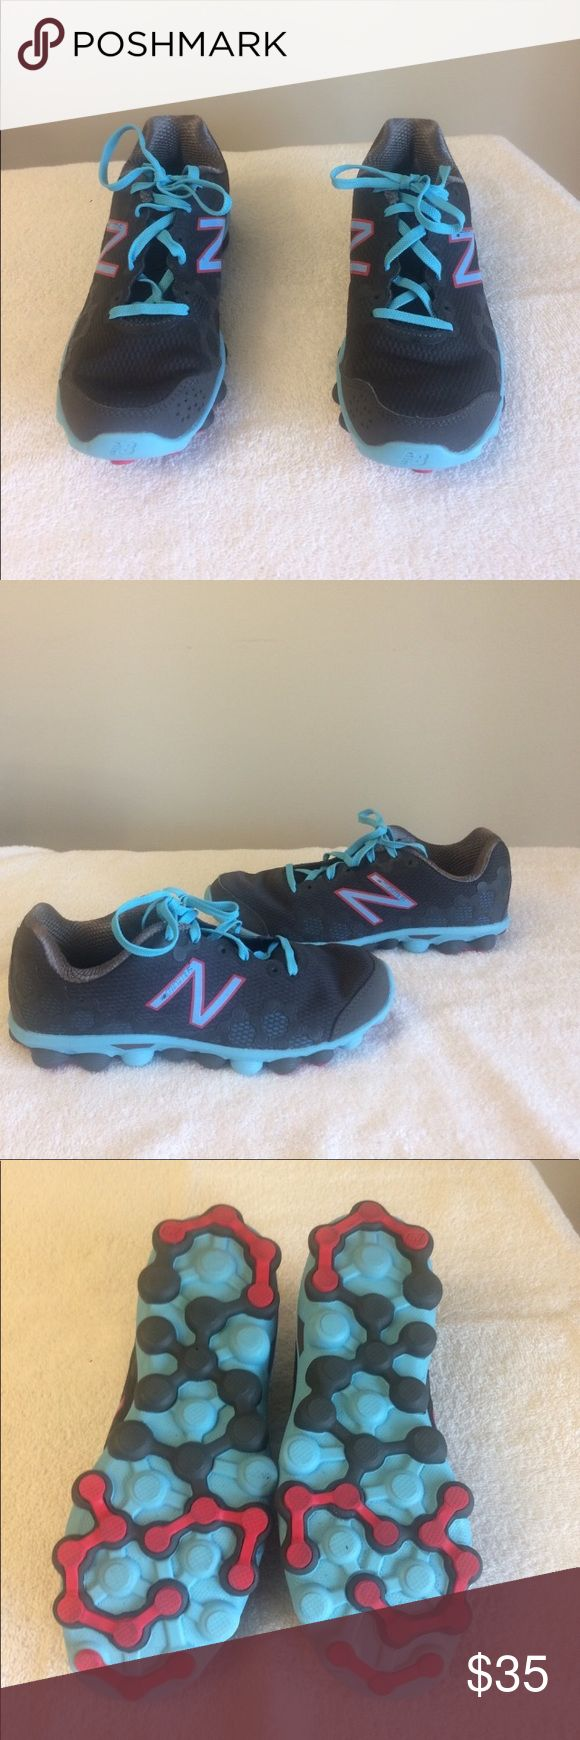 New Balance Minimus Ionix 7.5 : NWOT New Balance Minimus Ionix 7.5 : NWOT ... I bought these off this site... I LOVE them but they are a tad to small for me; my foot is slightly wide and to tight on sides but true to size otherwise... so sad bc they are super cute! New Balance Shoes Athletic Shoes